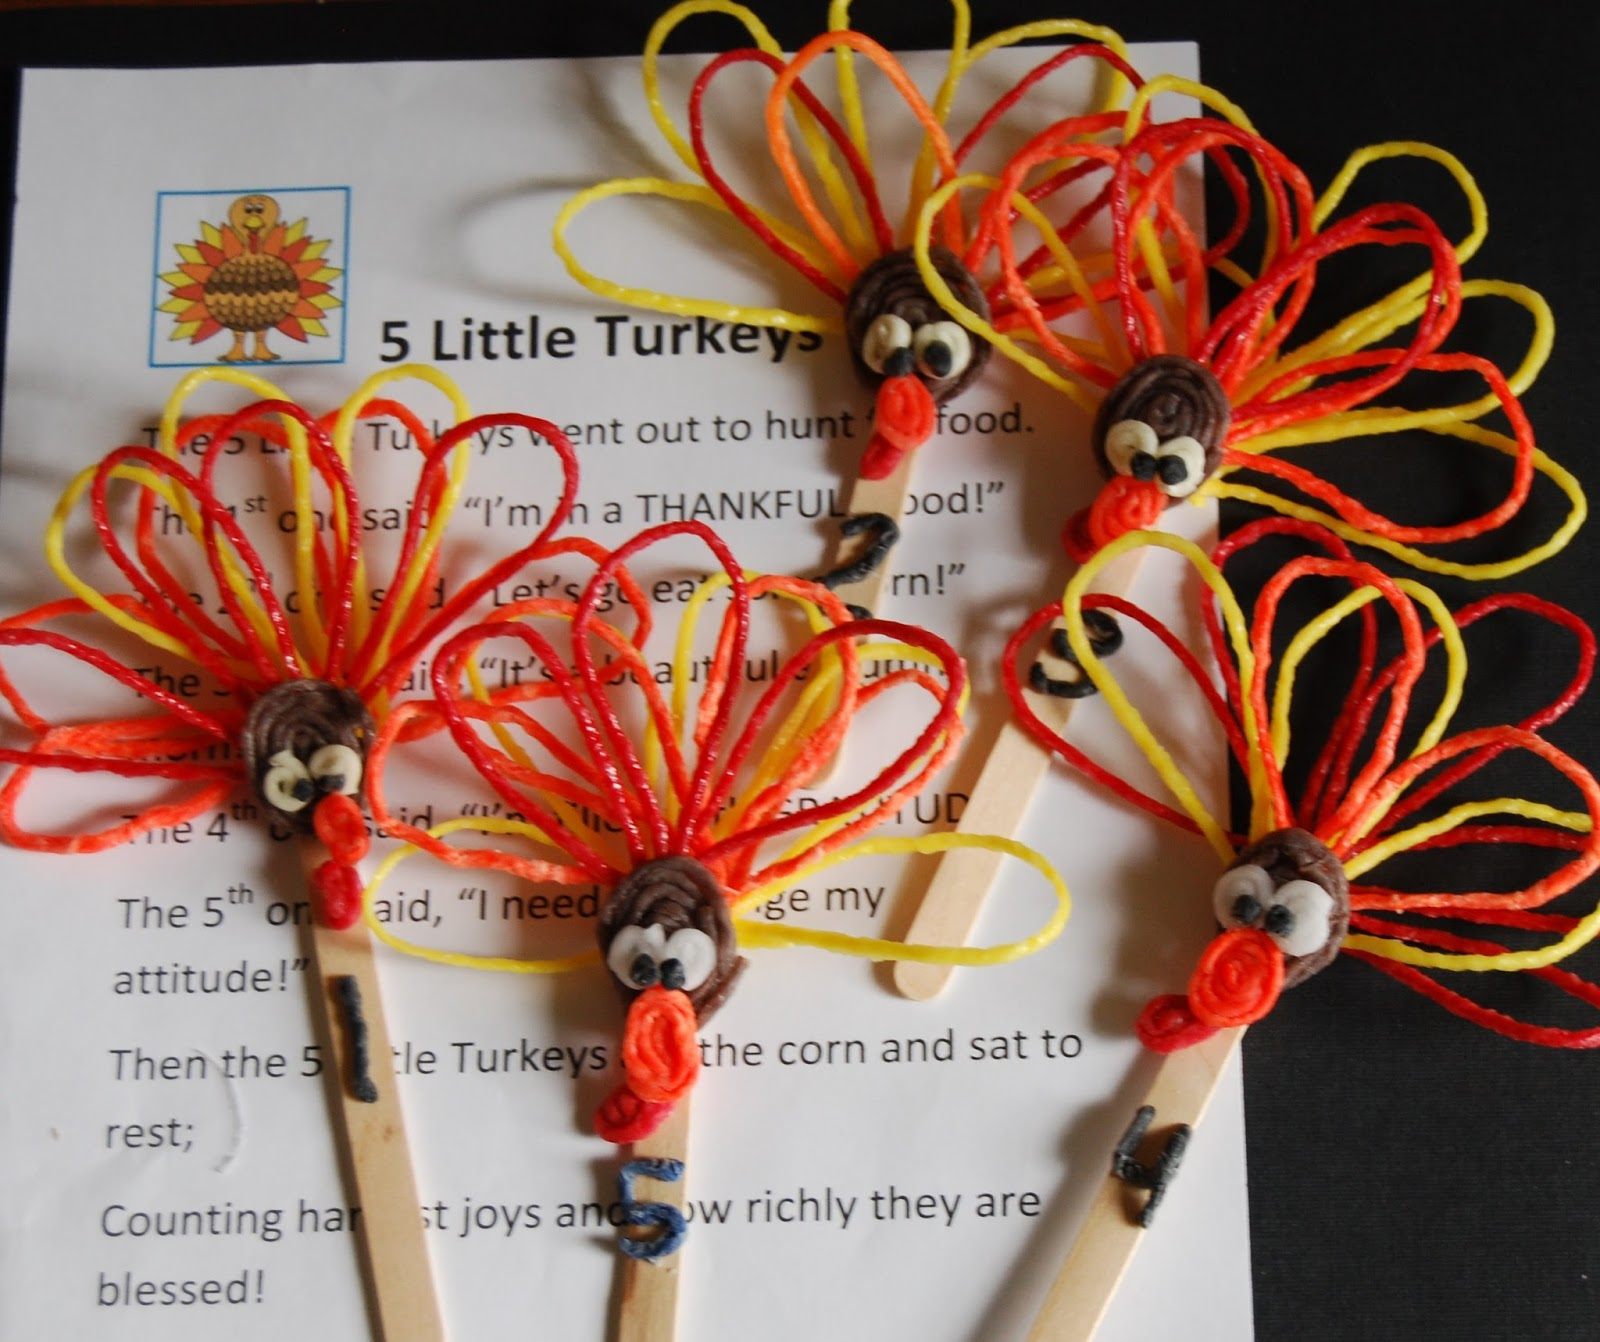 5 Little Turkeys A Gratitude Poem For Young Kids